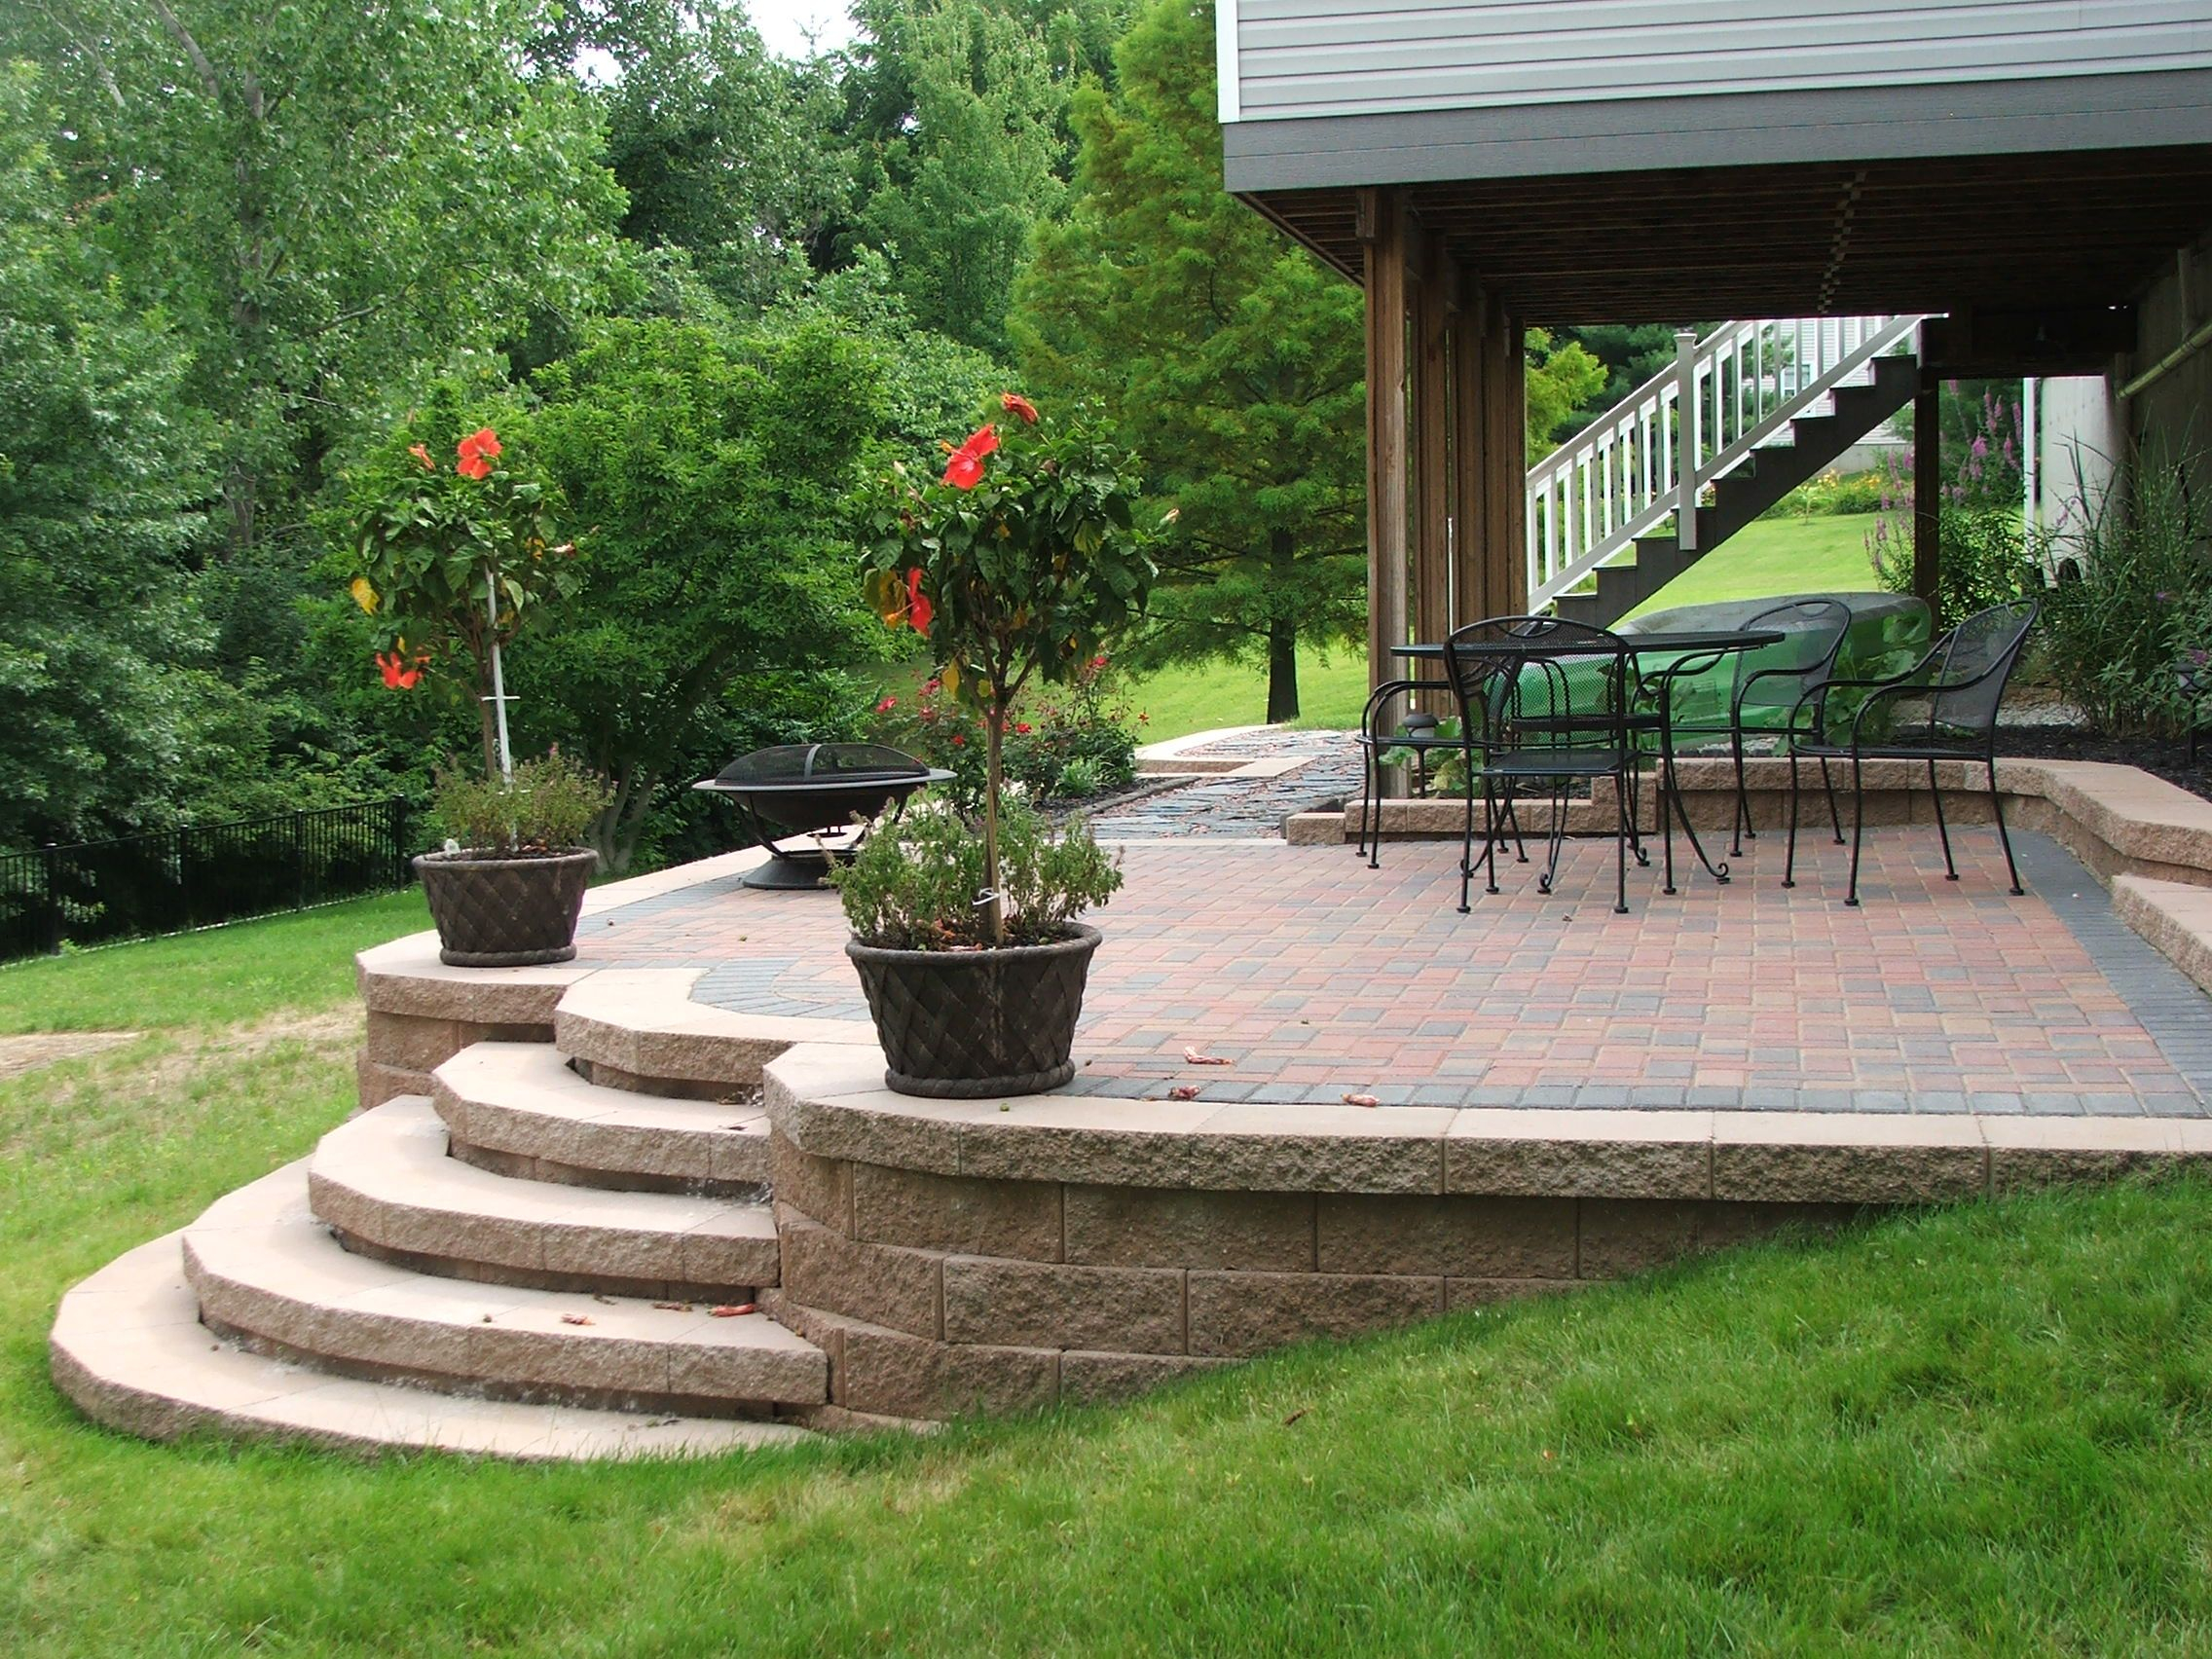 20 Creative Patio Outdoor Bar Ideas You Must Try At Your Backyard for Backyards Ideas Patios